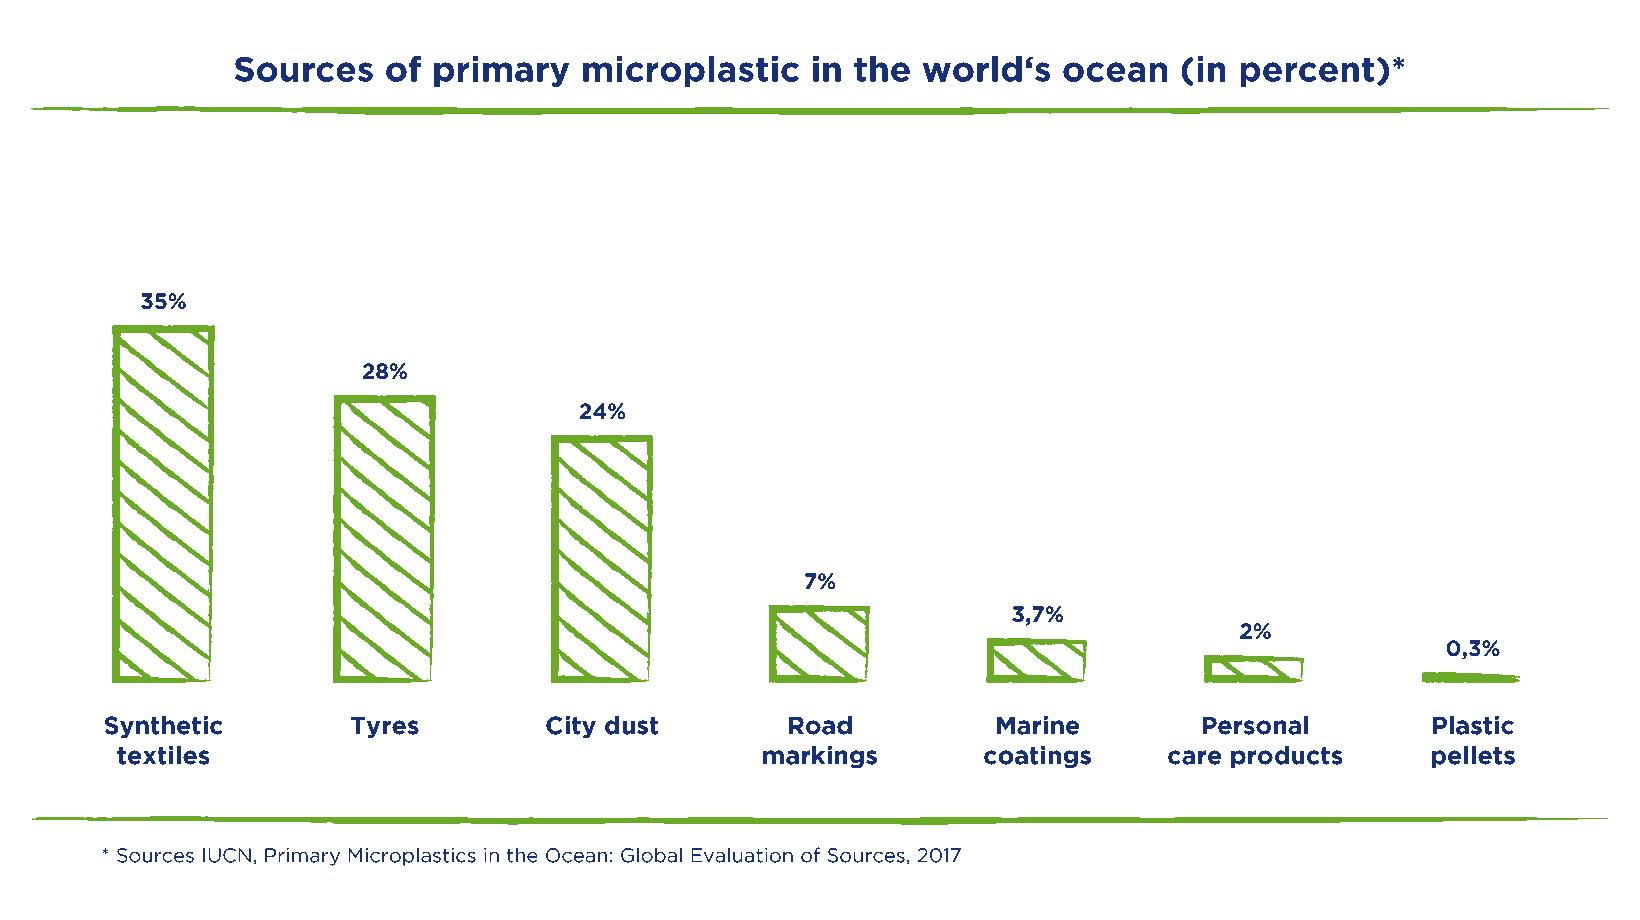 sources-of-primary-microplastic